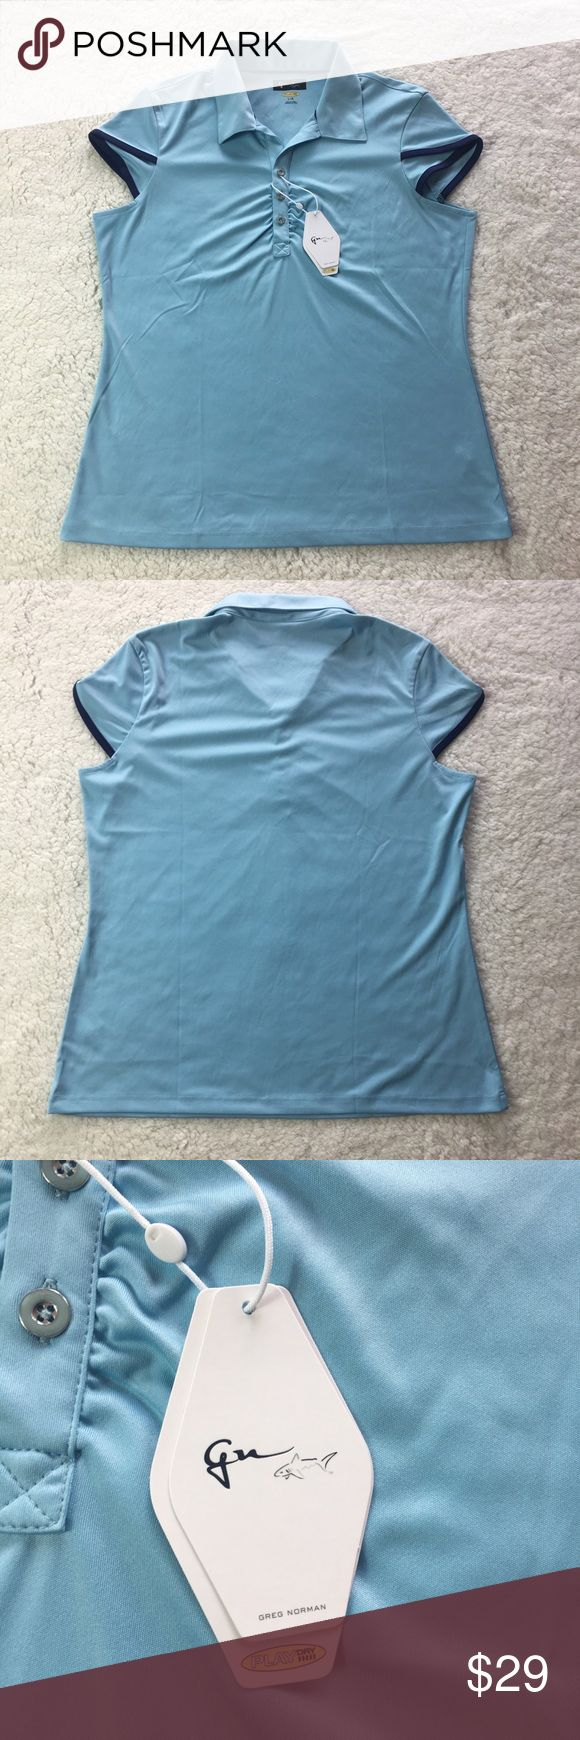 """NEW Greg Norman Women's Golf Shirt NWT Size Large New with tags Greg Norman woman's golf shirt. MSRP $70. 100% polyester.  Length is 25"""" Armpit to armpit is 20""""  Make me an offer! Greg Norman Tops Tees - Short Sleeve"""